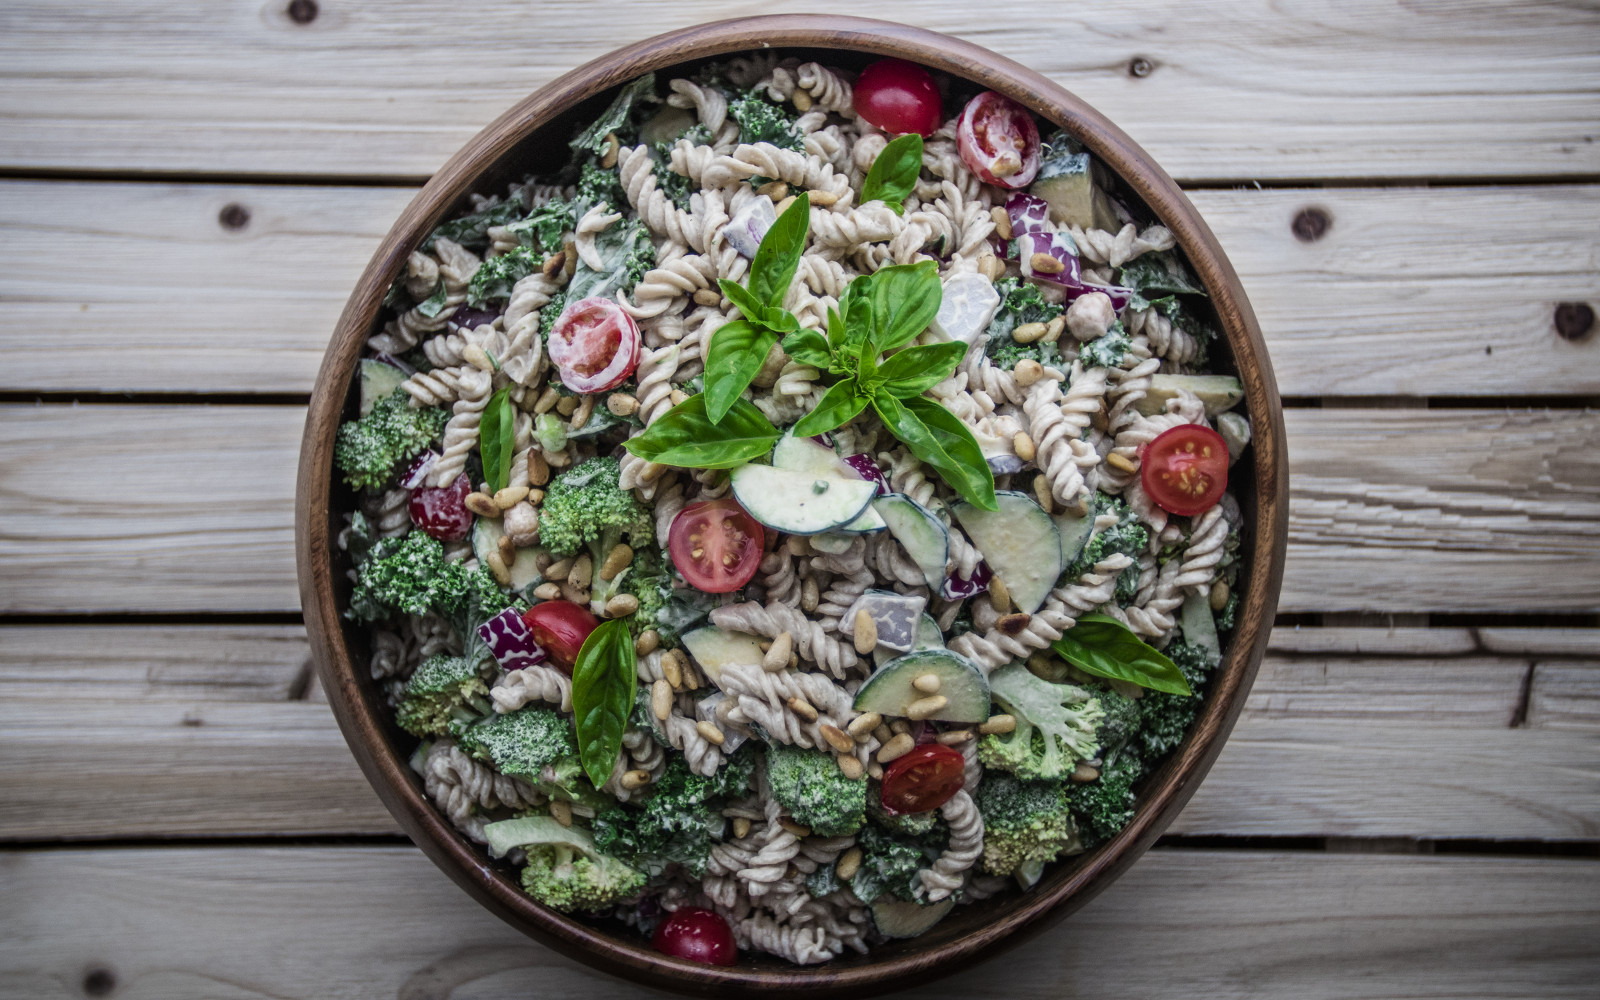 Vegan Garden Potluck Pasta Salad With Veggies, Herbs, and Orange-Miso Tahini Dressing